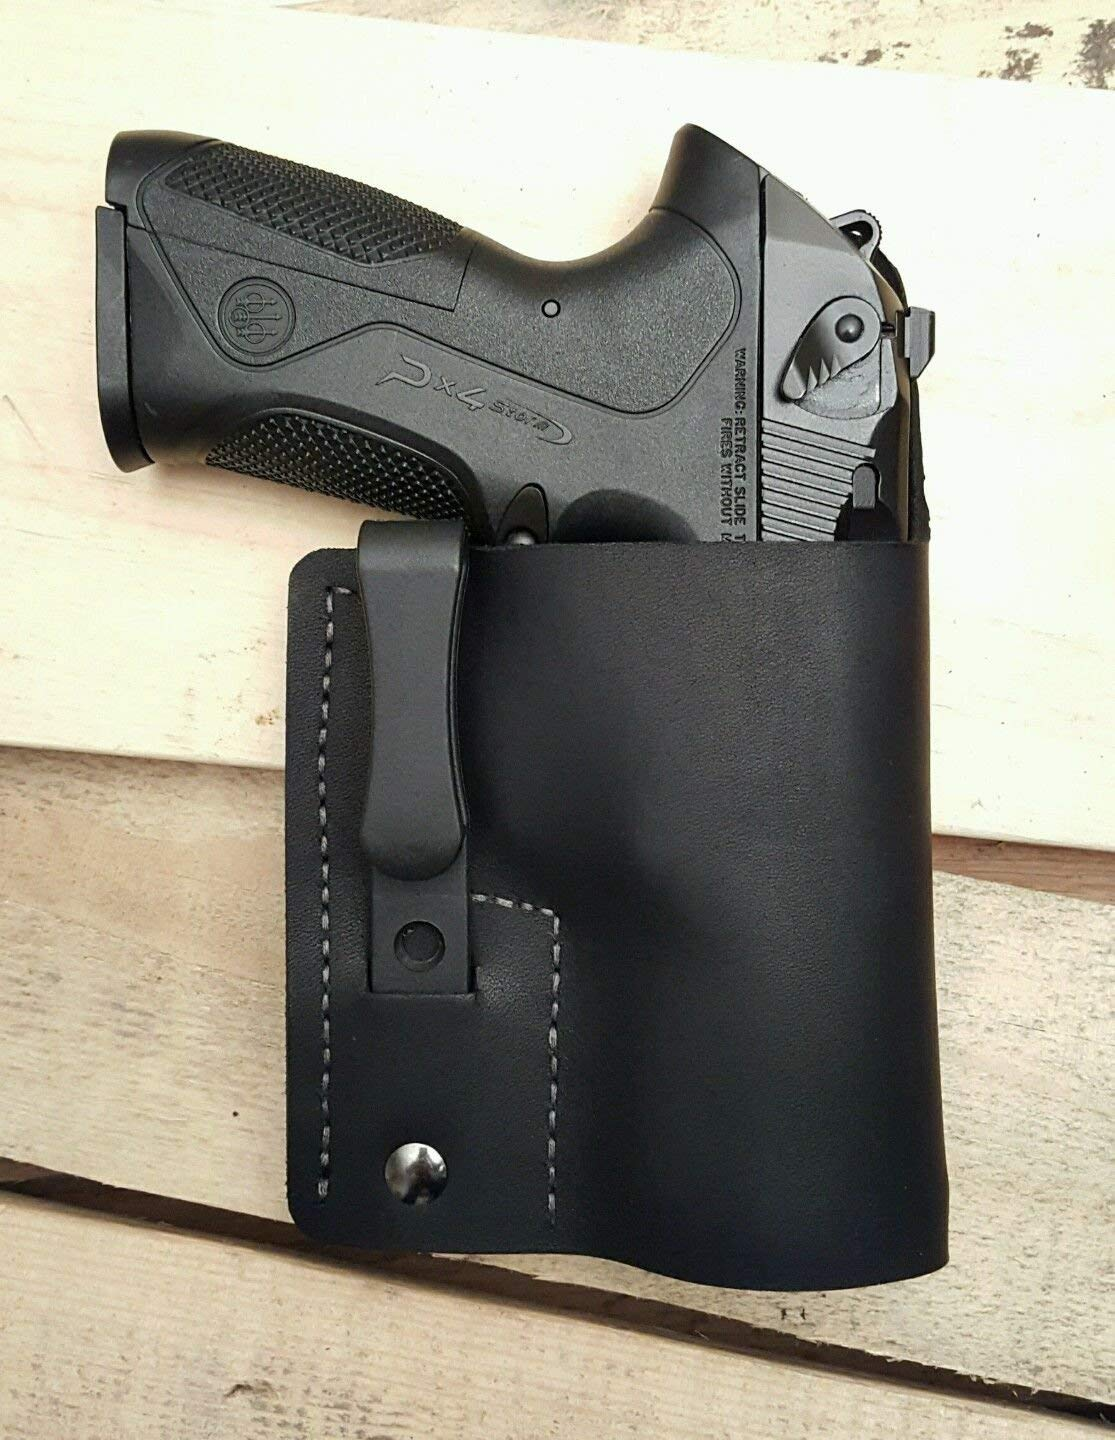 Bass Tactical Soft Leather Concealed Holster Tuckable Carry Limited New life time cheap sale IWB